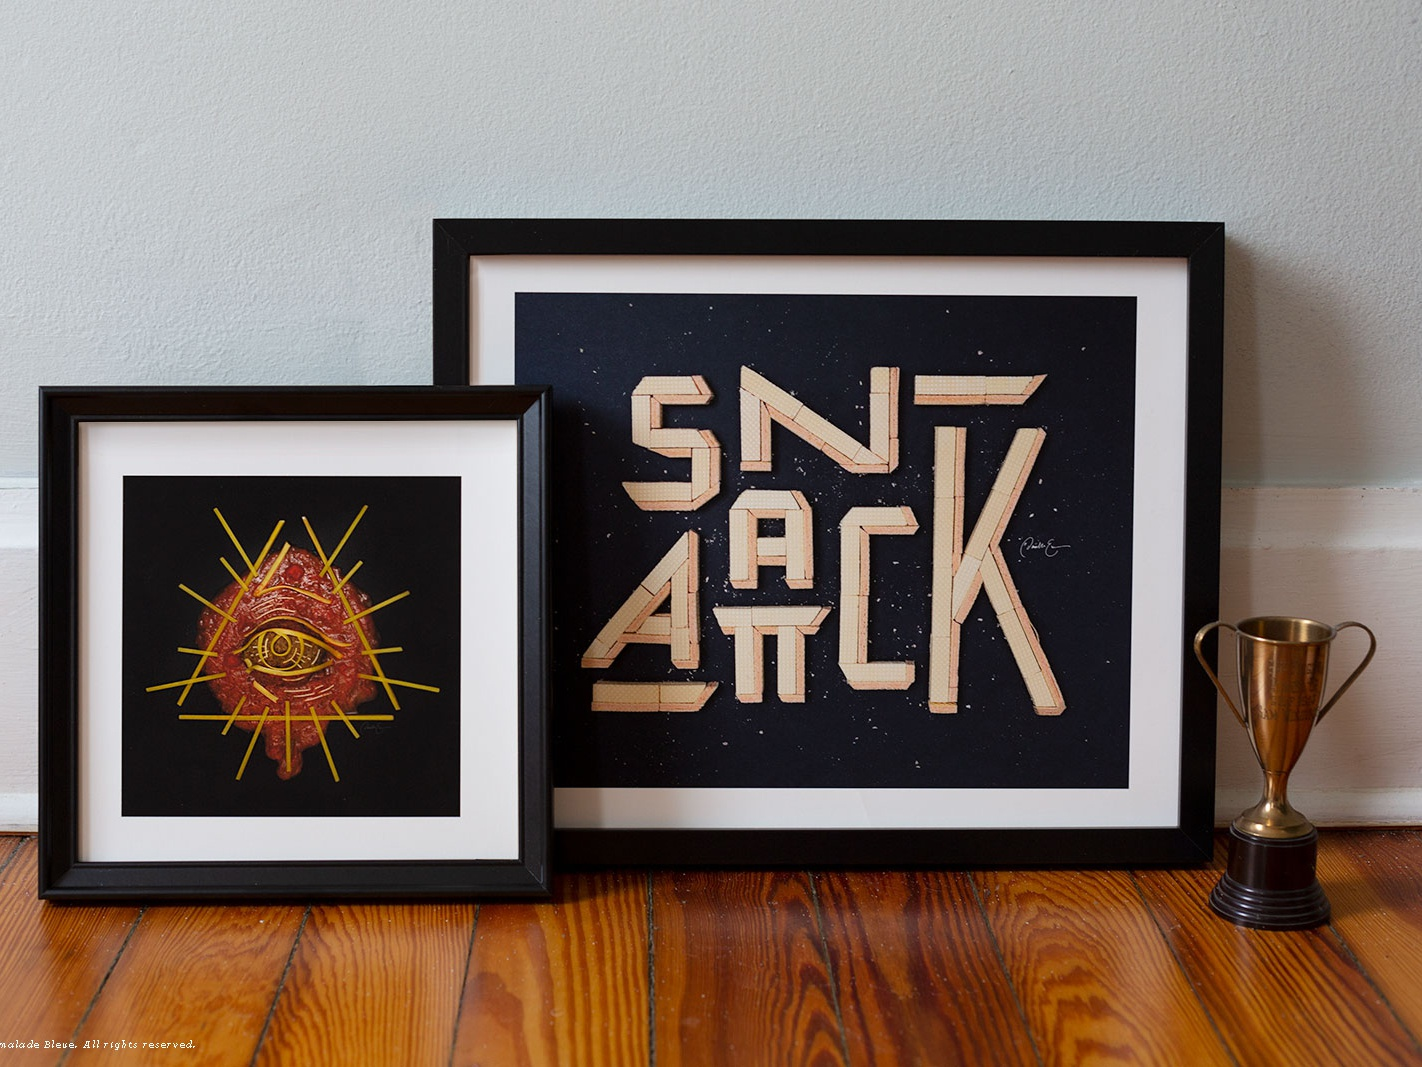 Prints snack attack and secret sauciety framed